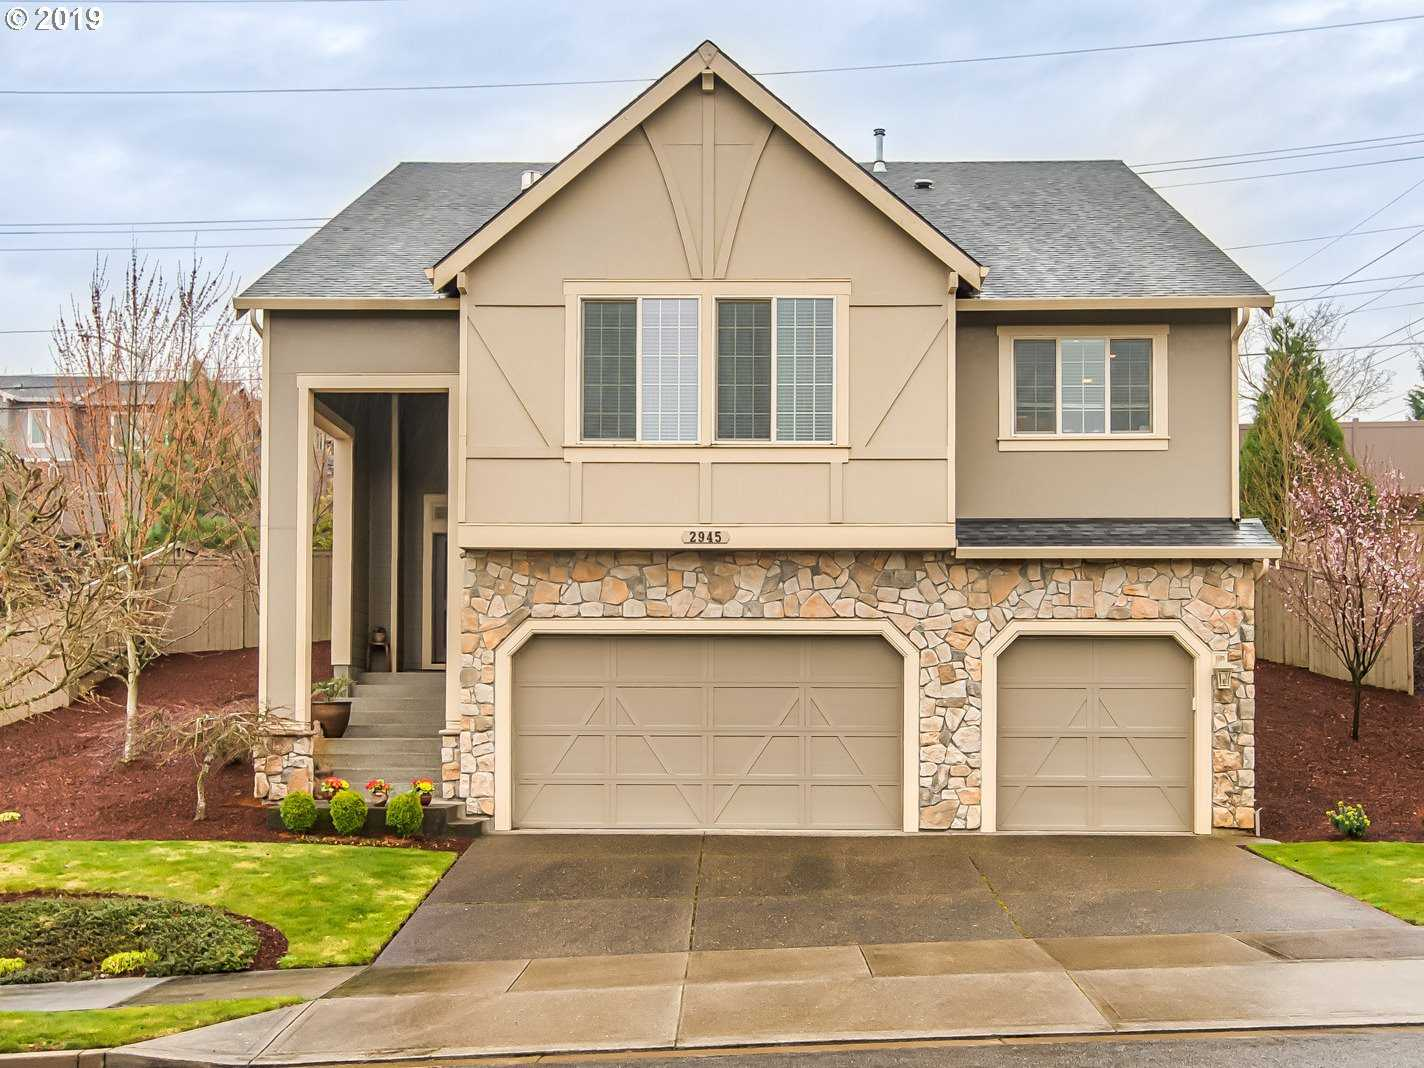 $579,900 - 4Br/3Ba -  for Sale in Maxfield, West Linn